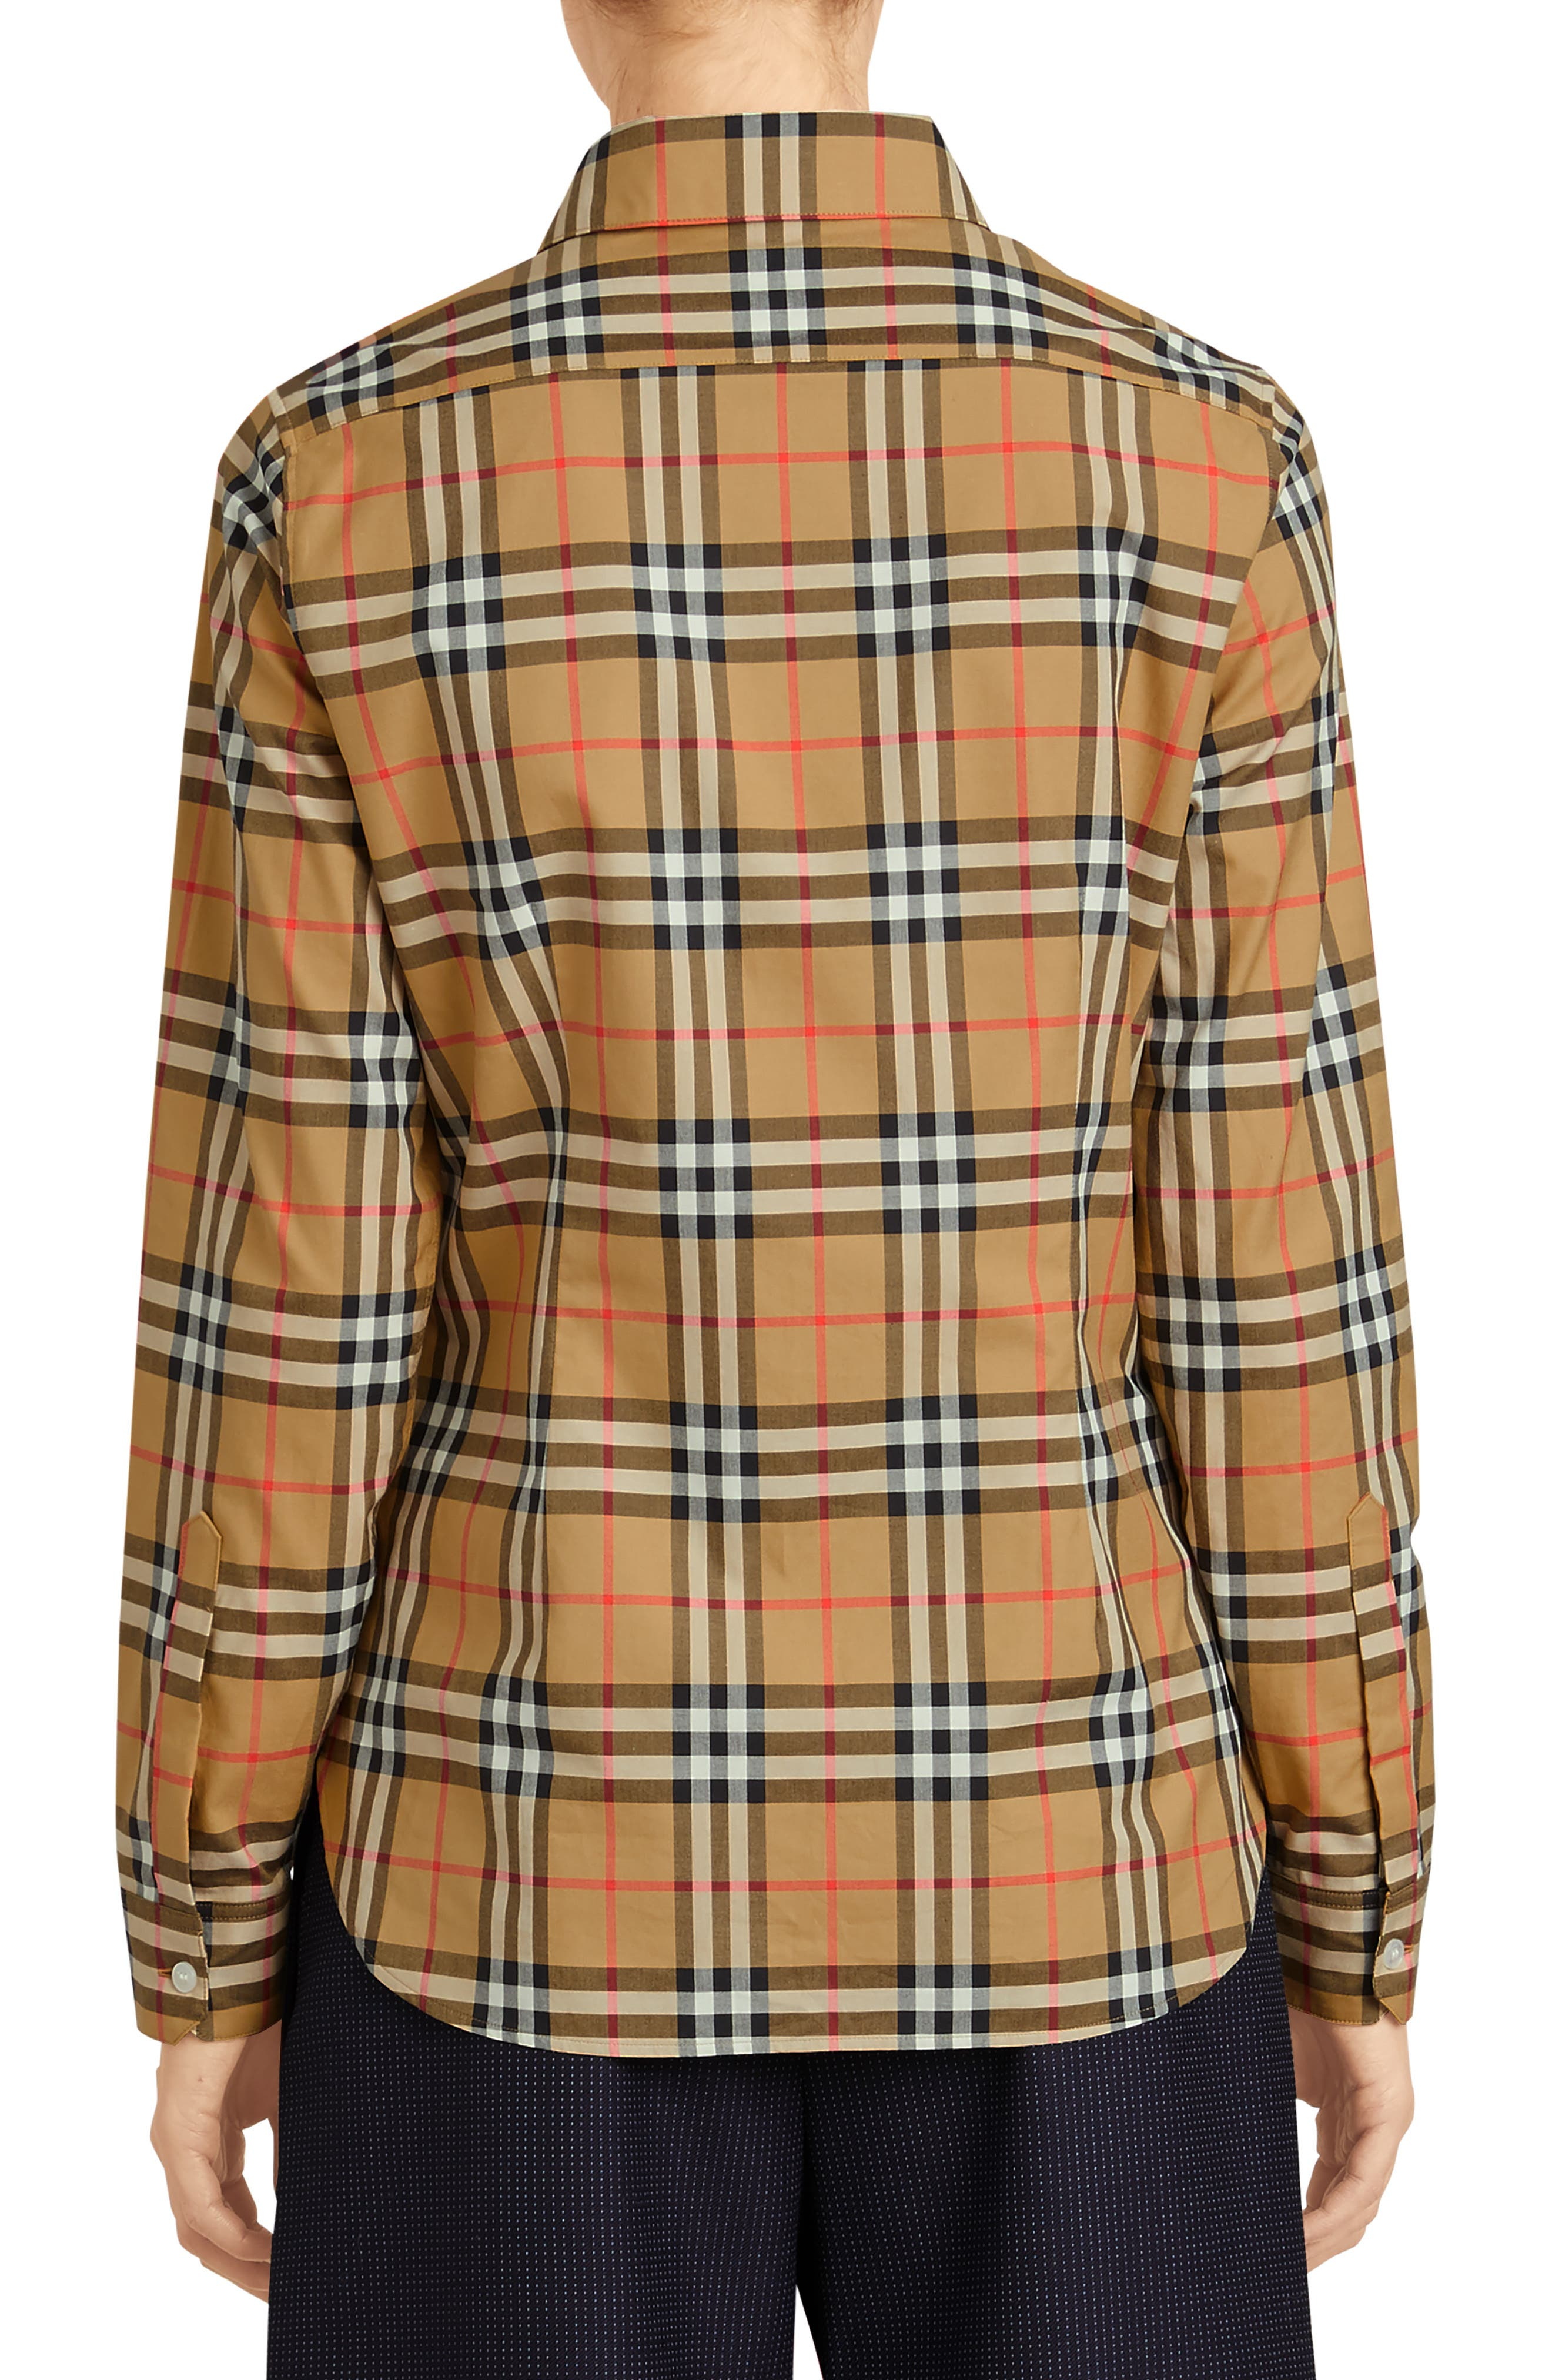 BURBERRY, Crow Vintage Check Shirt, Alternate thumbnail 2, color, ANTIQUE YELLOW CHECK